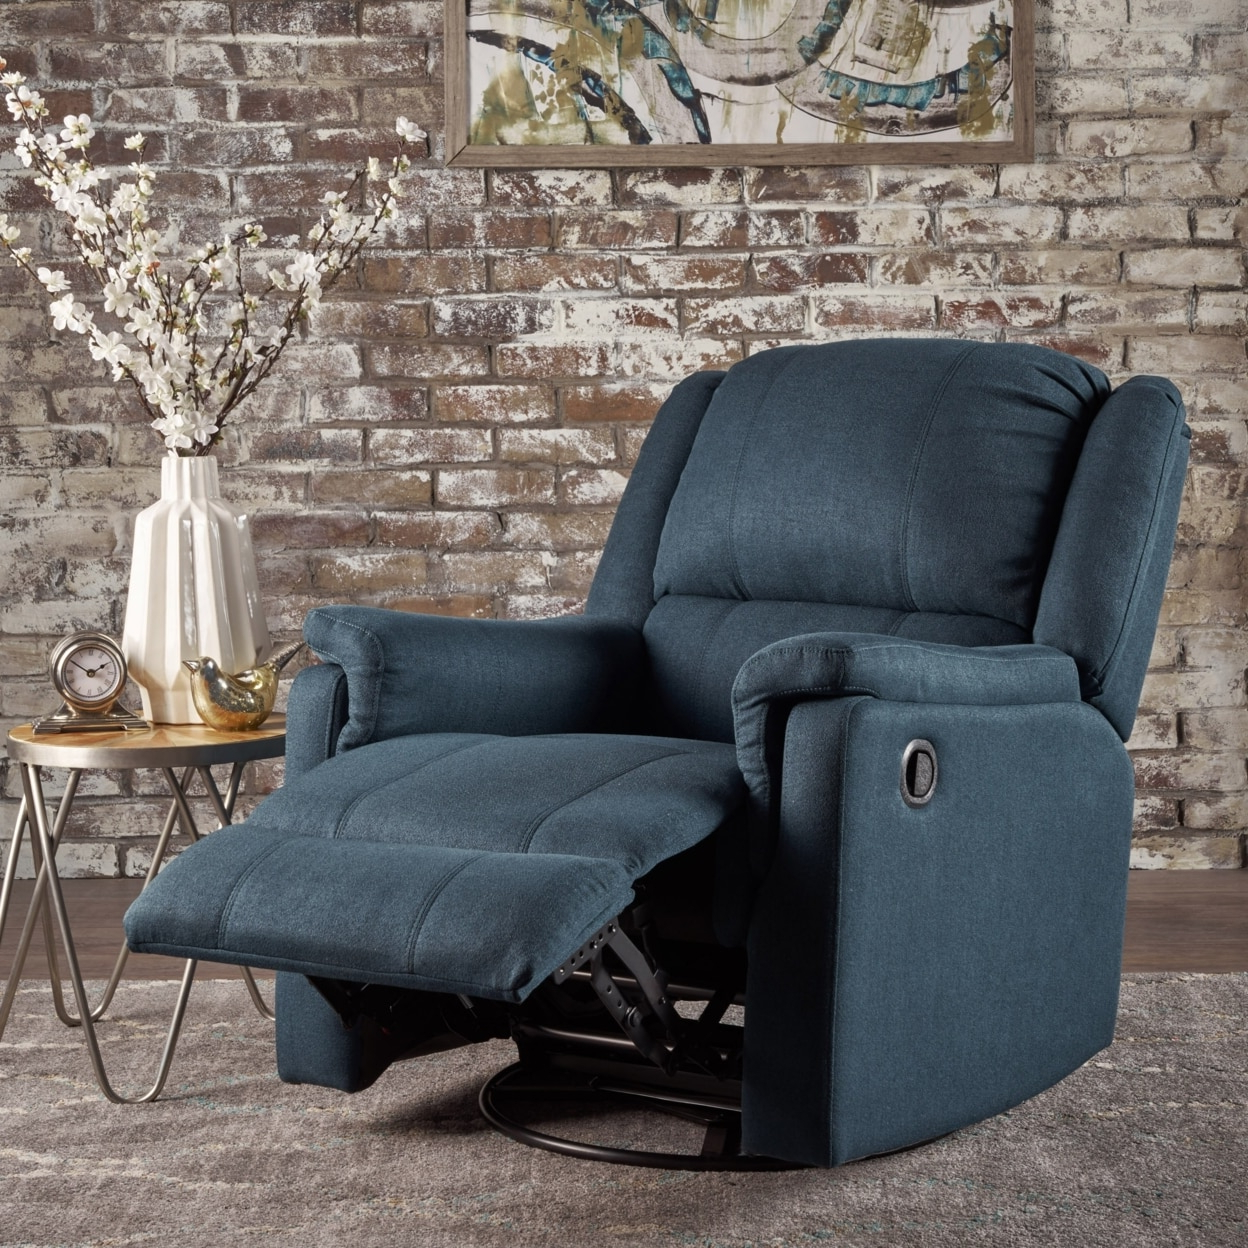 Decker Ii Fabric Swivel Glider Recliners For Most Current Jemma Tufted Fabric Swivel Gliding Recliner Chair In Living Room (Gallery 4 of 20)